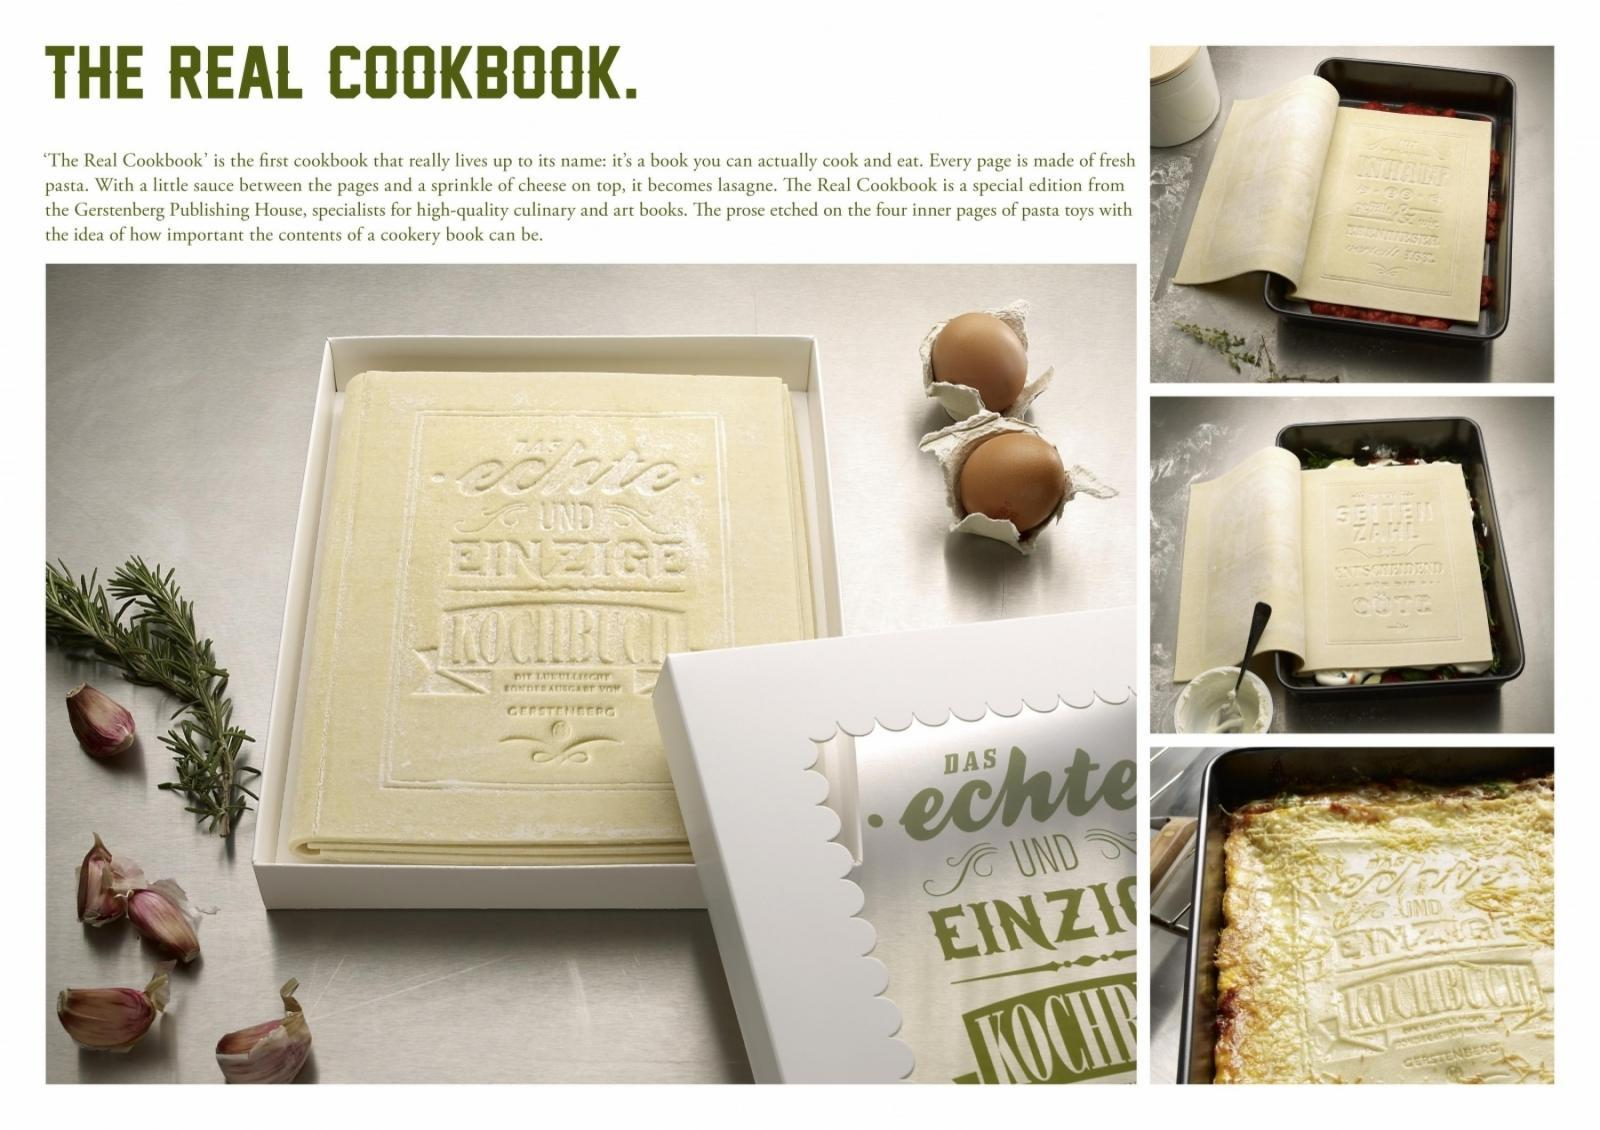 Gerstenberg Verlag Direct Ad -  The Real Cookbook